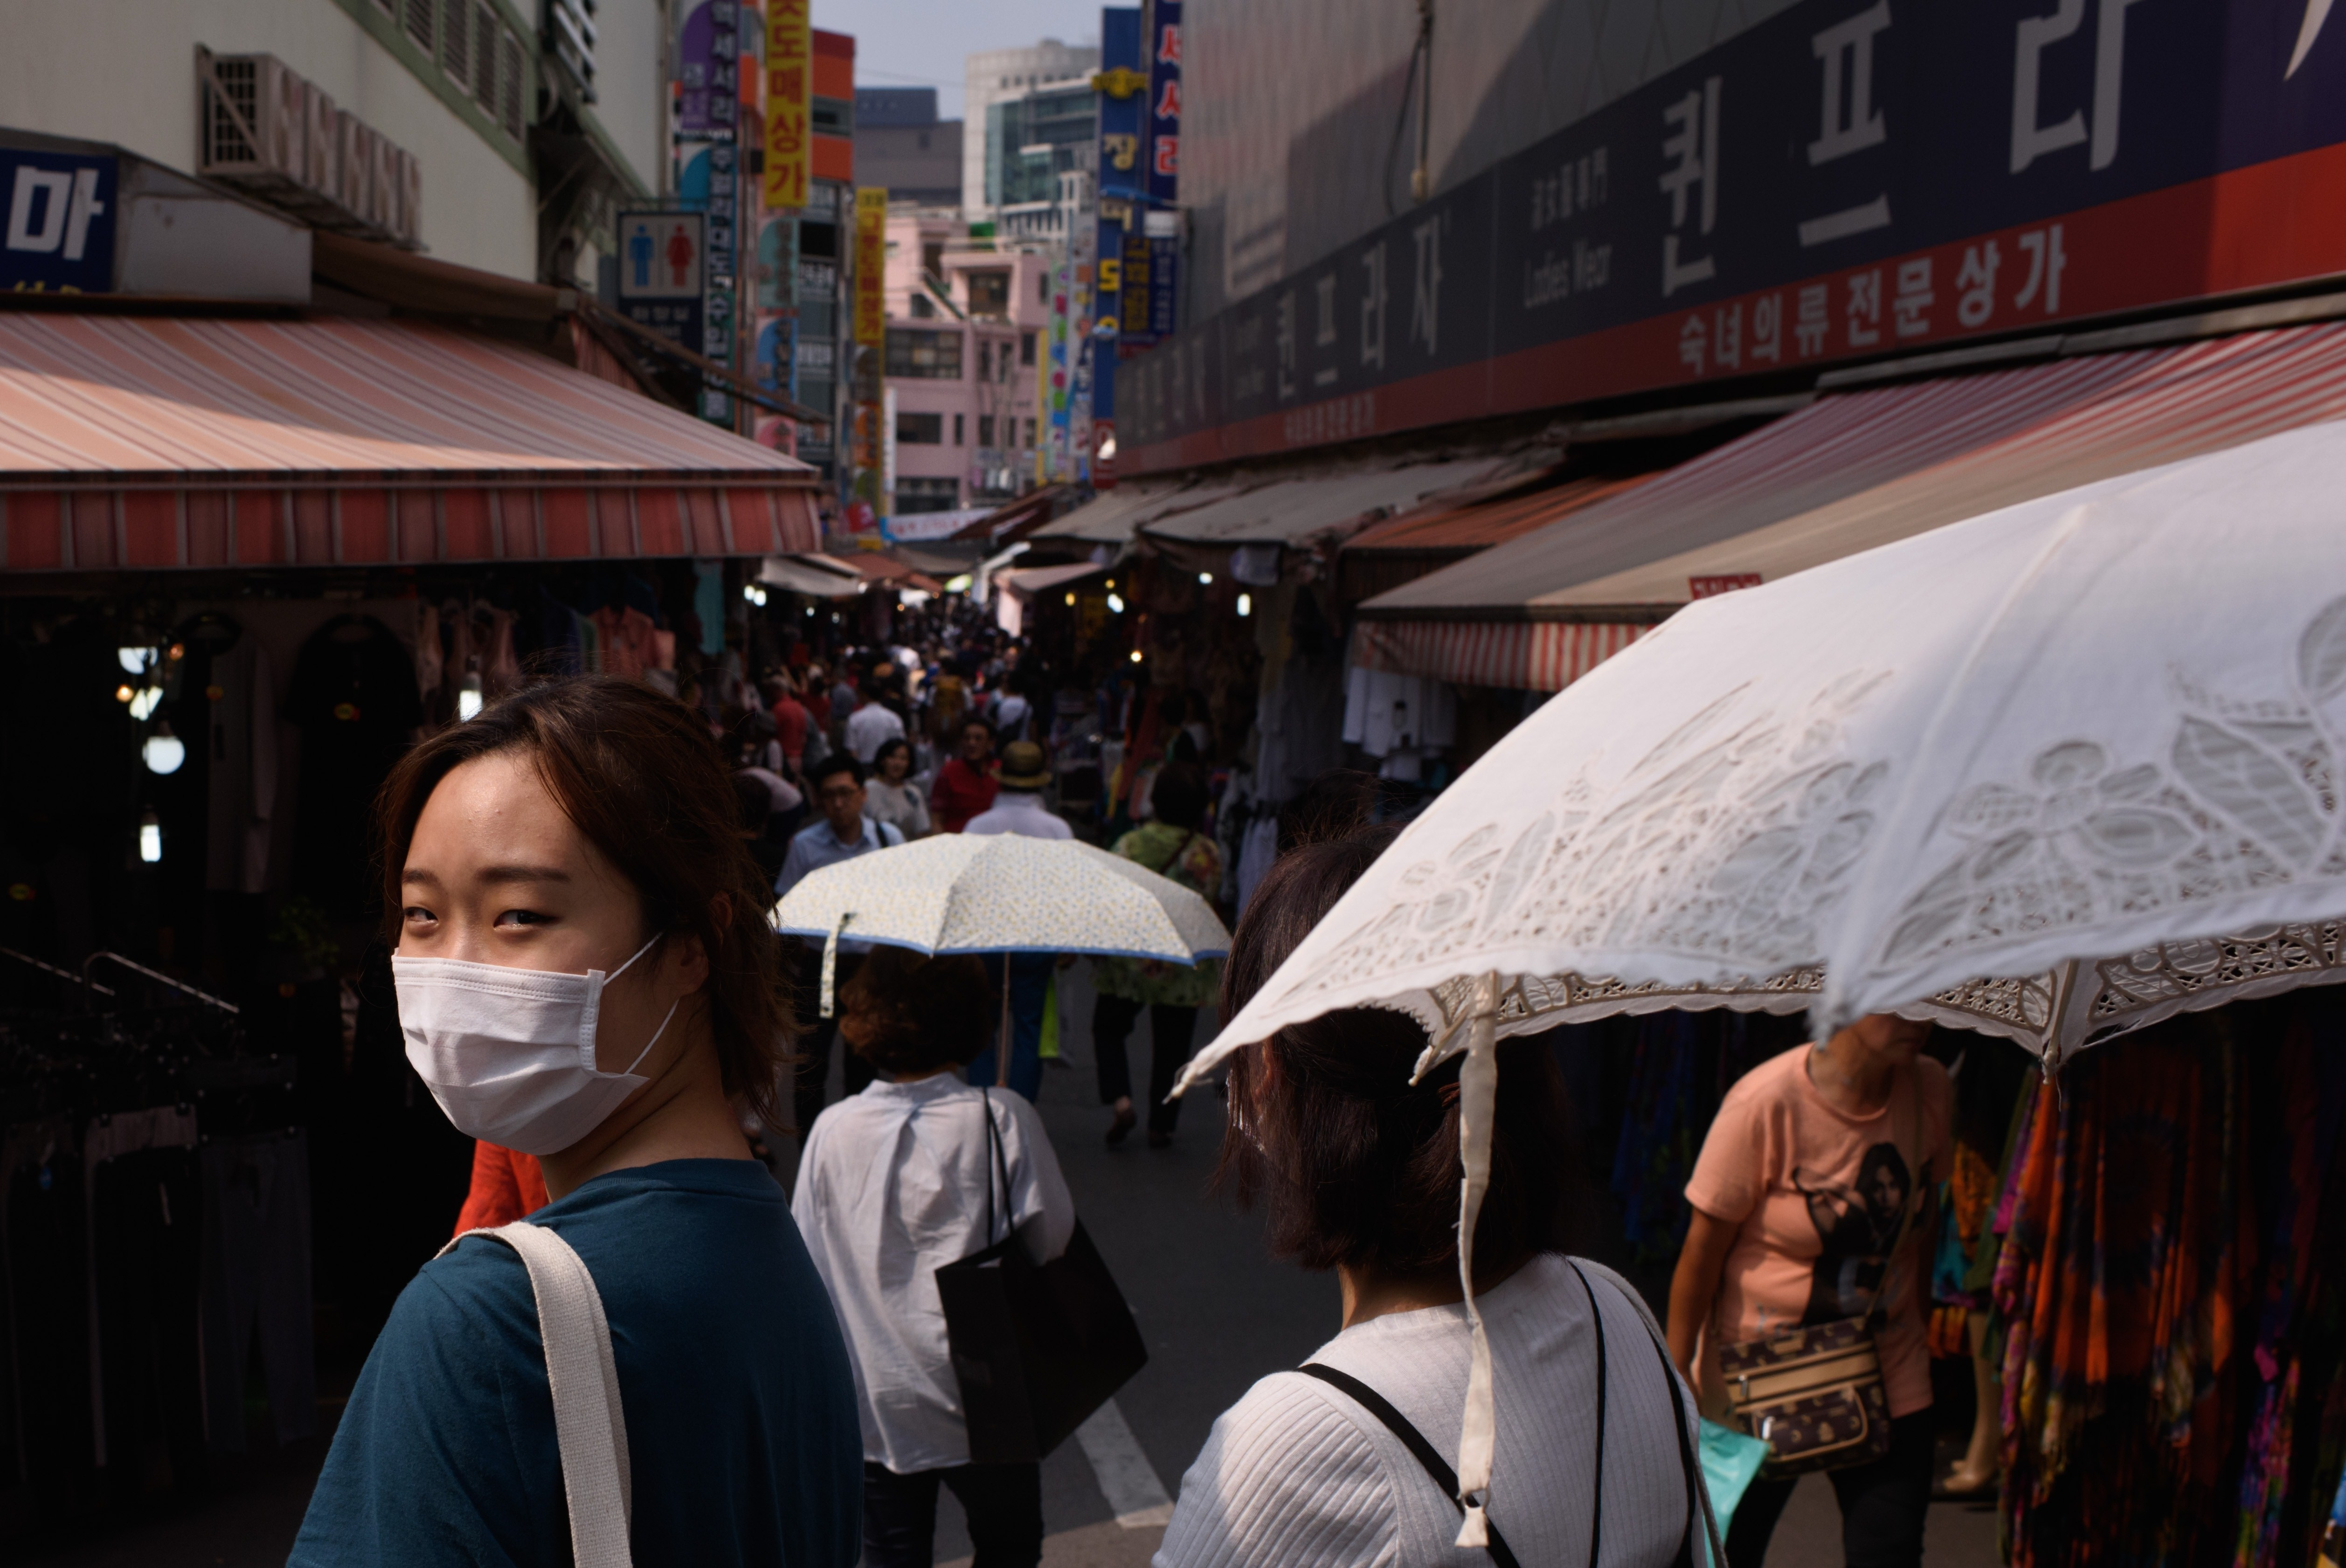 Will A Surgical Mask Keep You Safe In A Viral Outbreak?